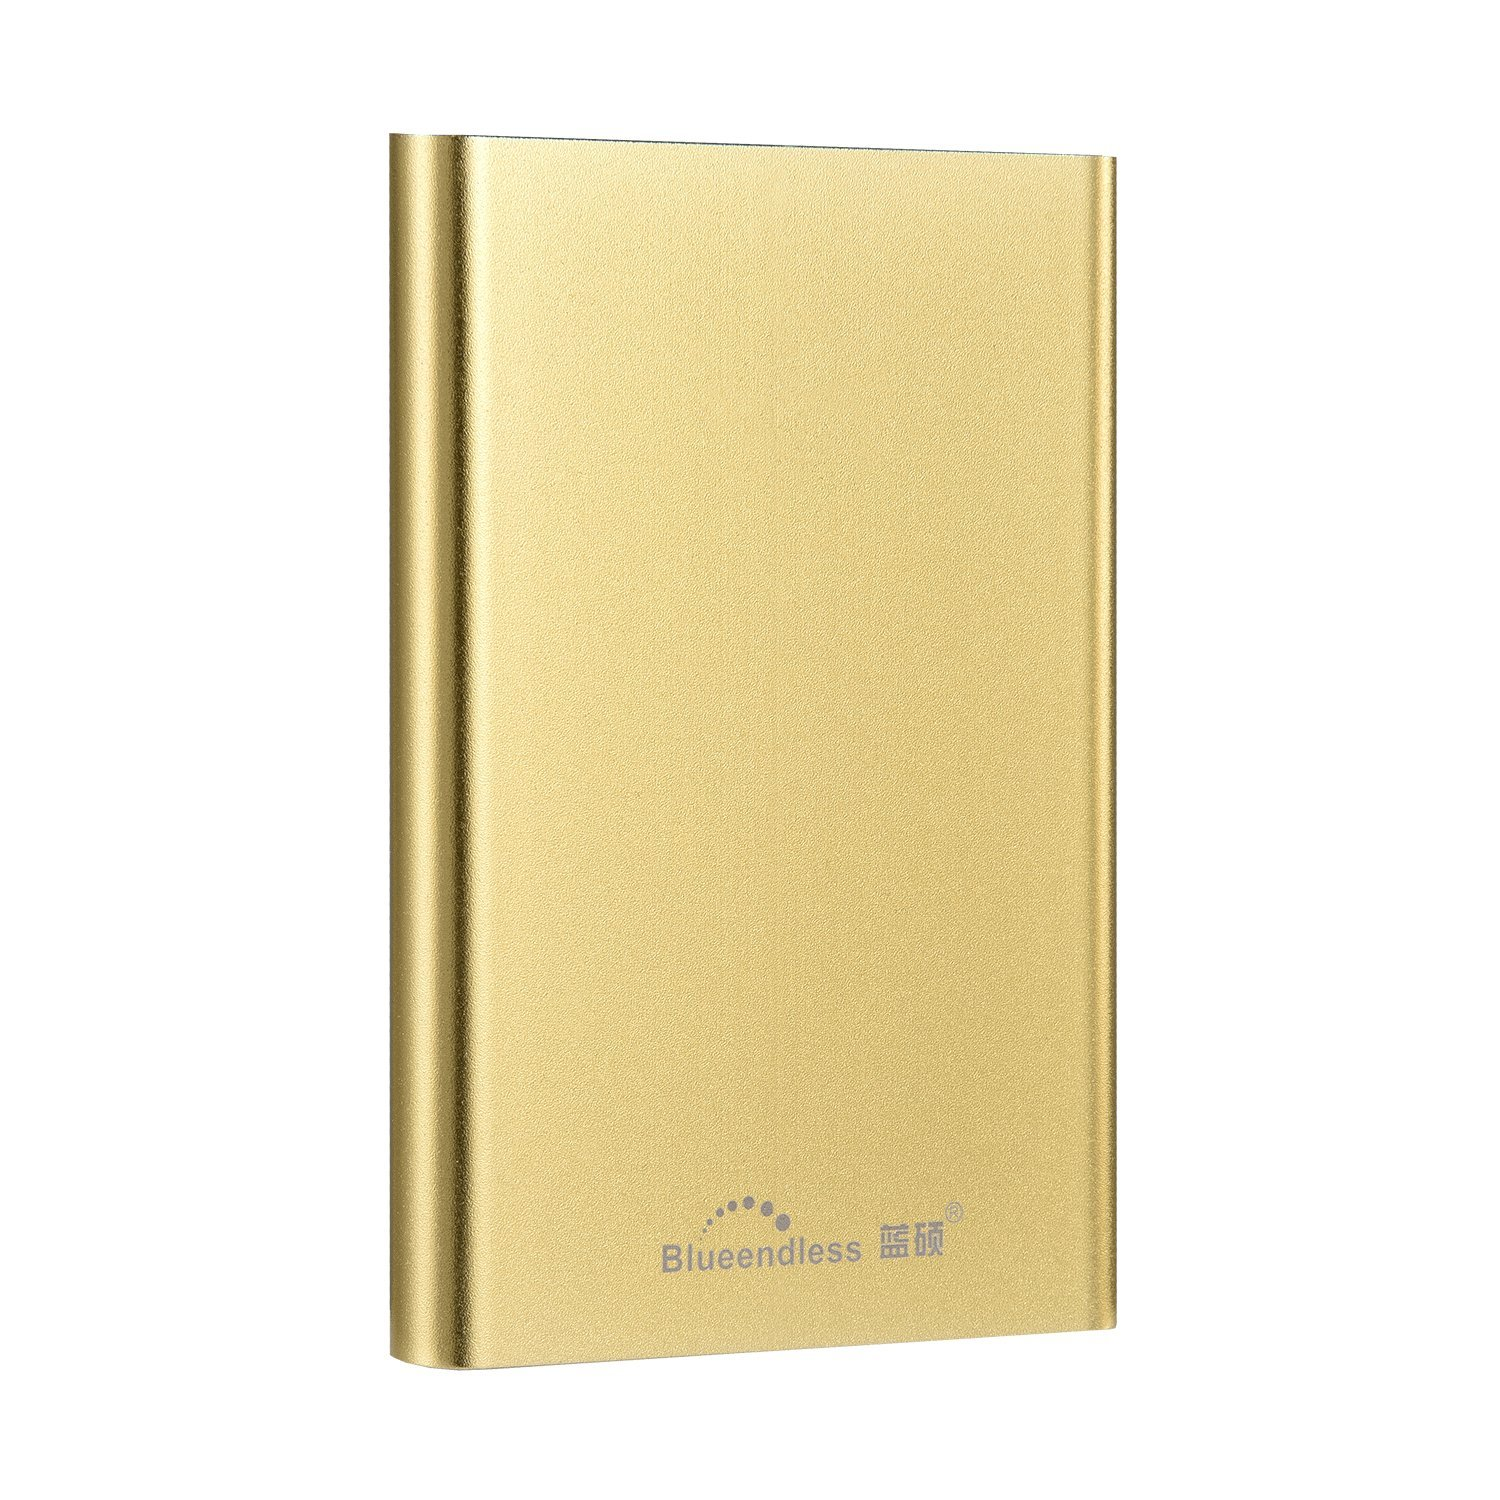 320GB Portable External Hard drive Blueendless HDD 2.5'' Hard Disk Storage Devices computer laptop (GOLDEN)